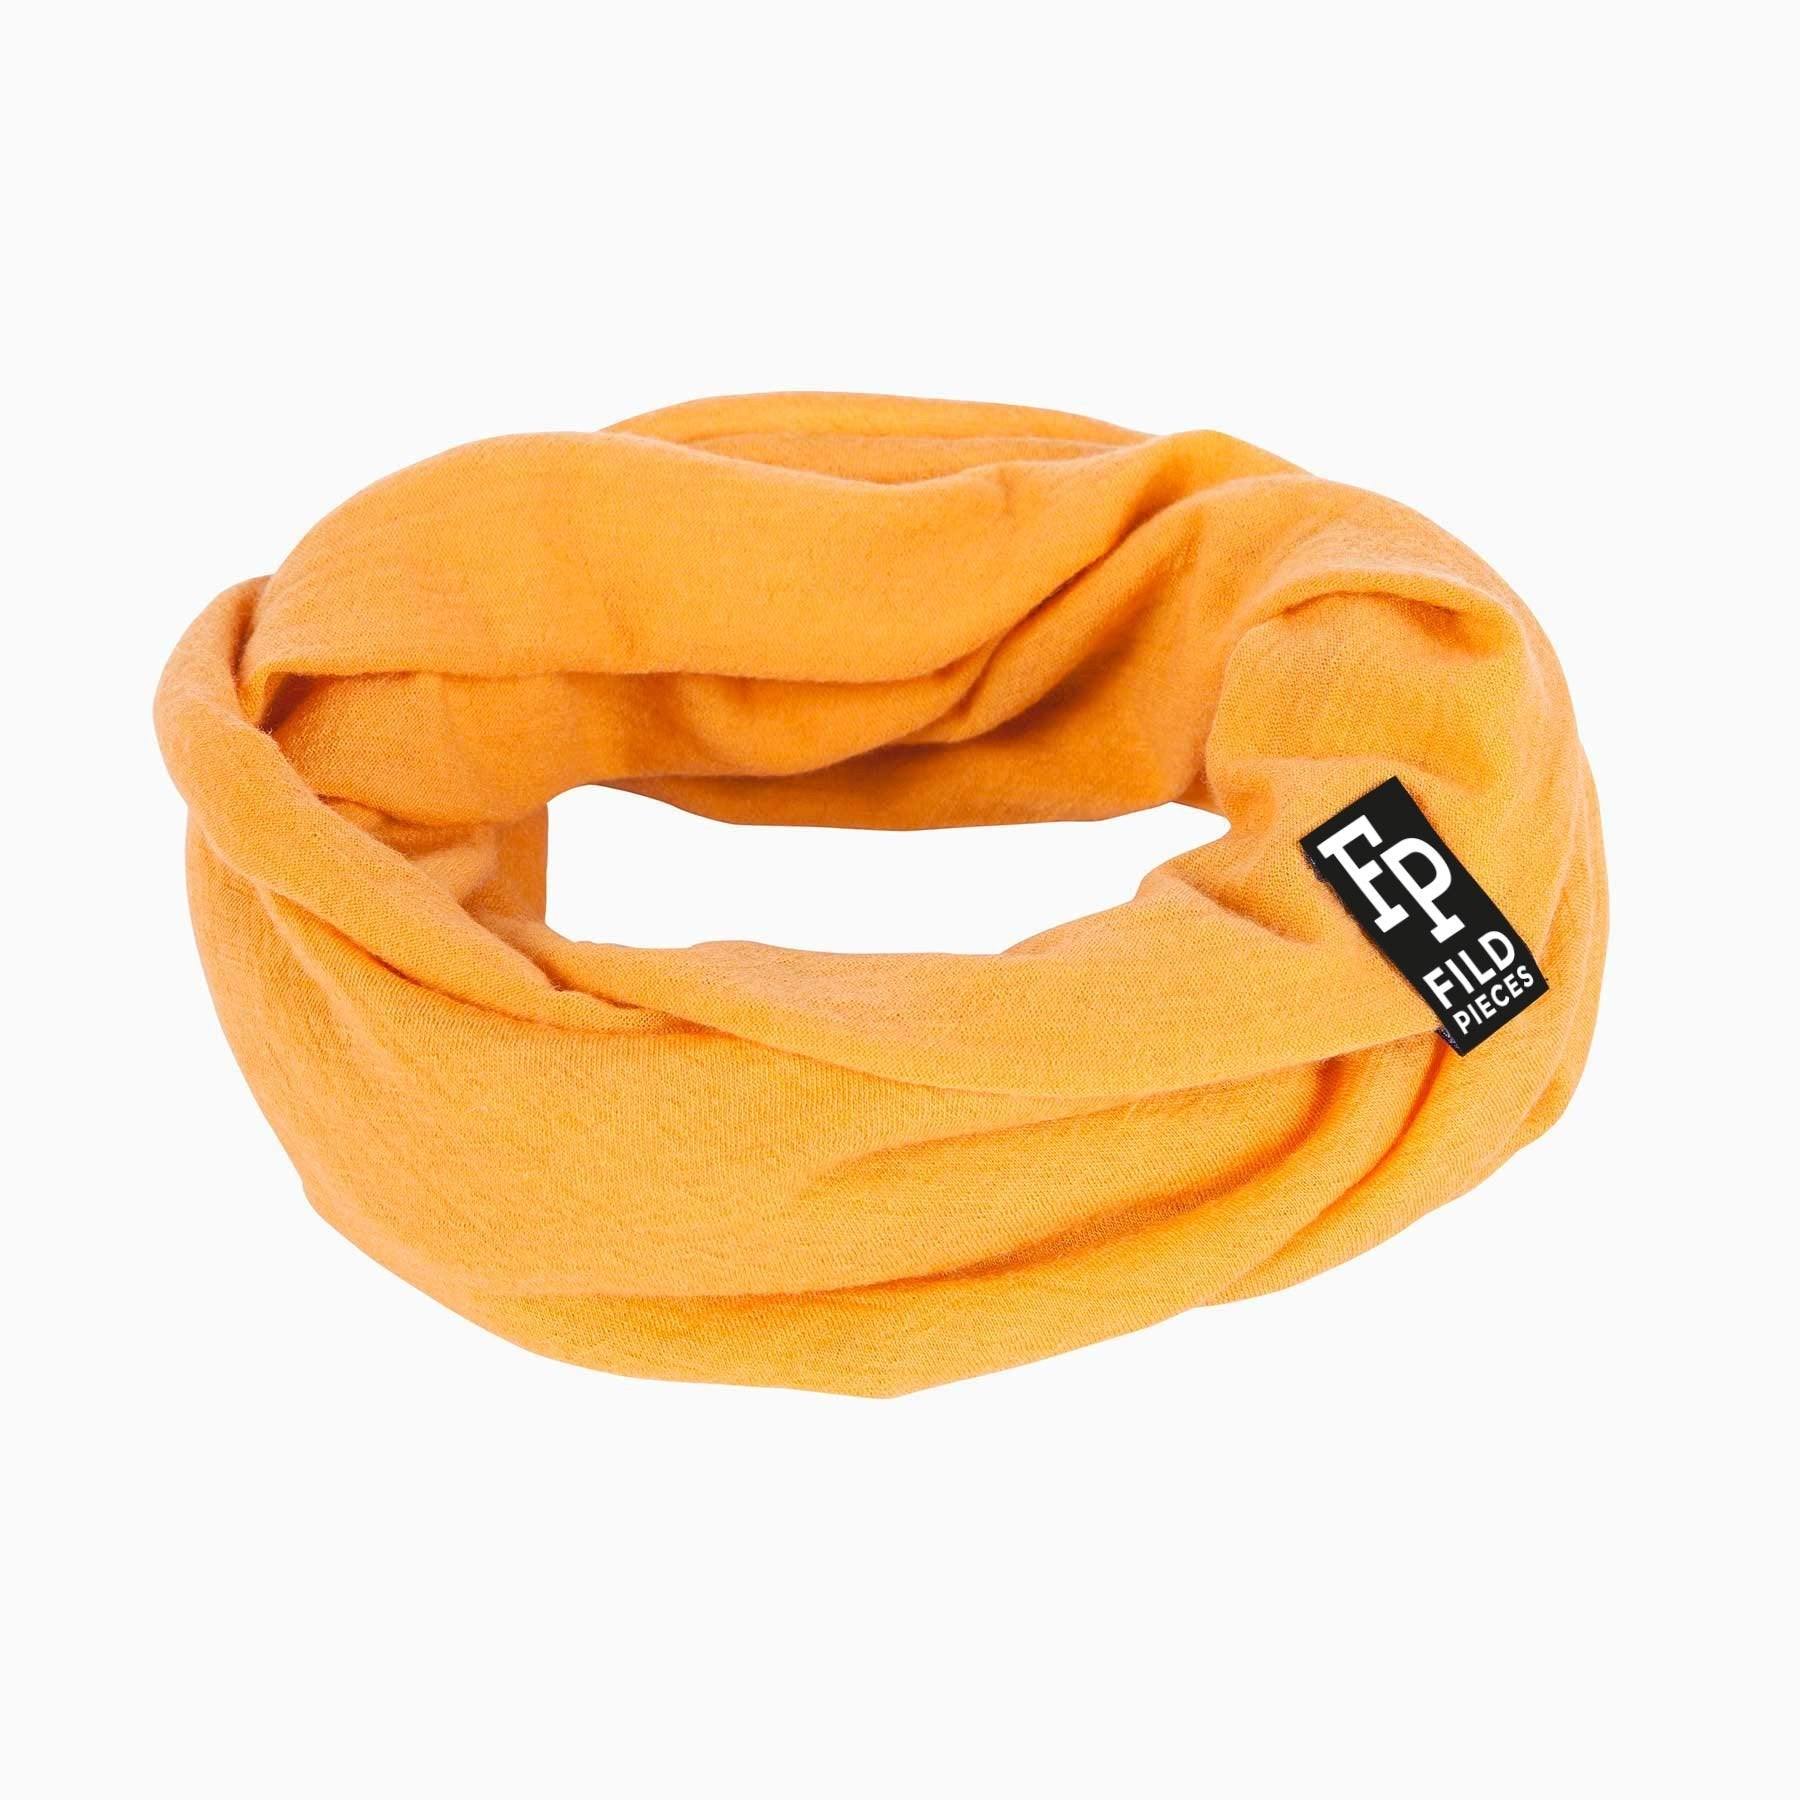 Tjorven Snood merino wool scarf yellow